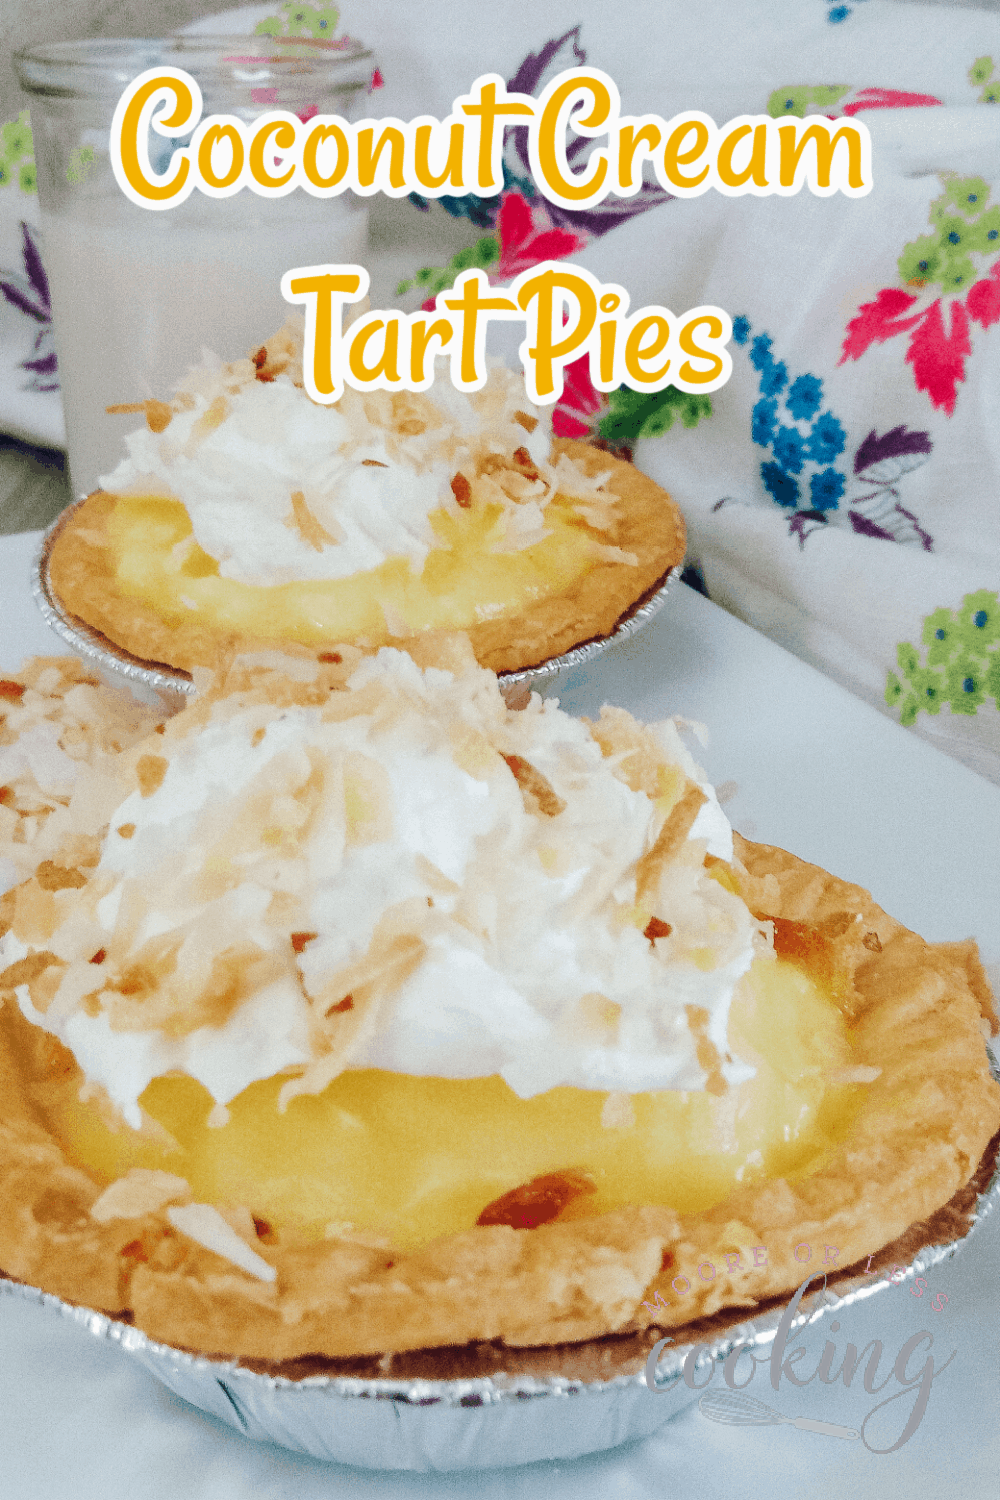 These no-bake mini tarts are a quick, easy and creamy coconut dessert that's topped with the nutty flavor of toasted coconut. Perfect for a brunch, a party, or a single-serve treat, these coconut cream pie tarts are a delightfully simple and scrumptious dessert. via @Mooreorlesscook